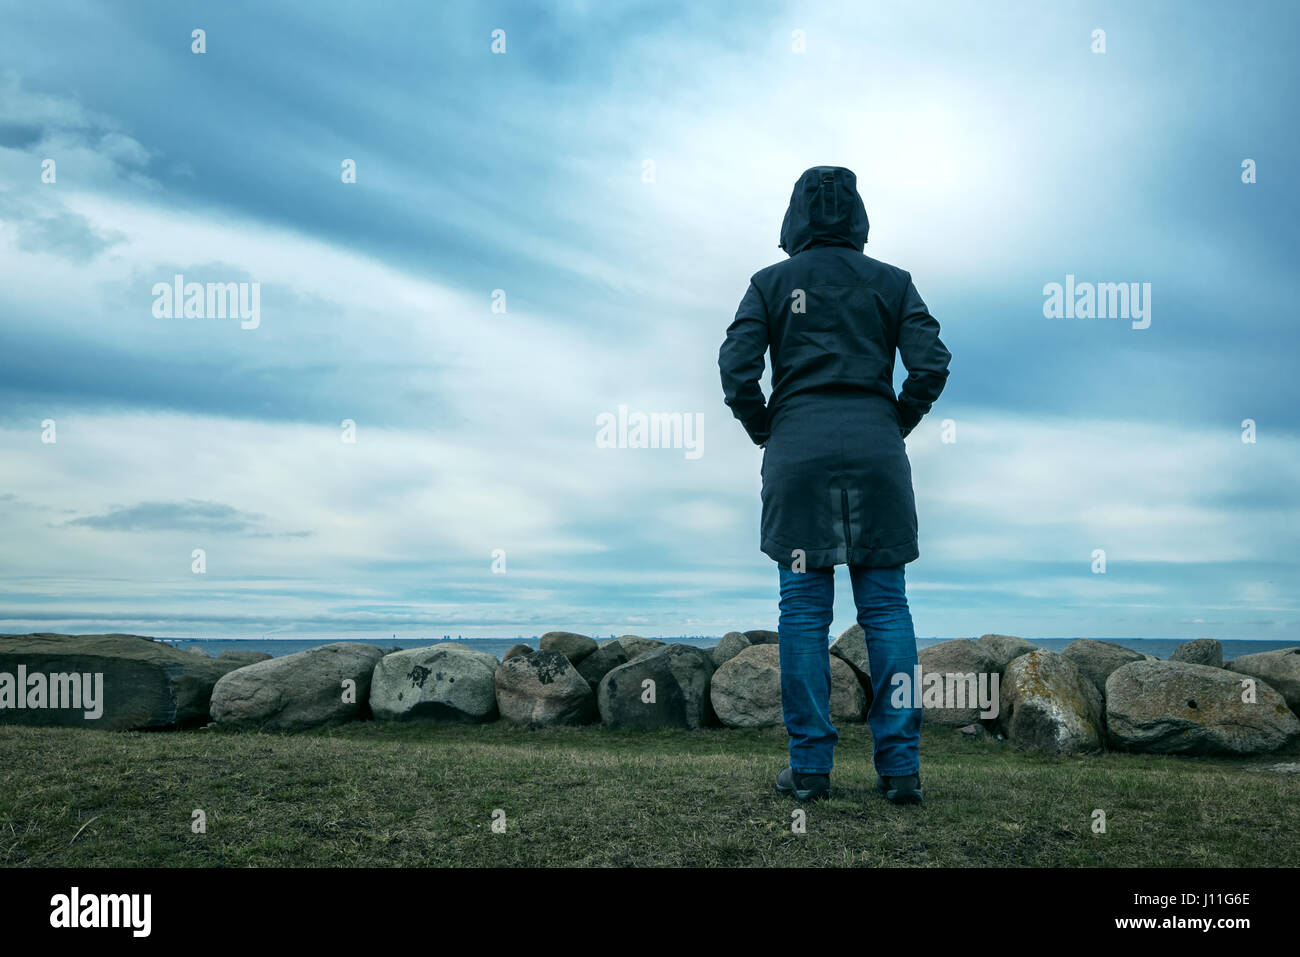 Lonely hooded female person from behind standing at seashore and looking into distance on a cold winter day, concept Stock Photo